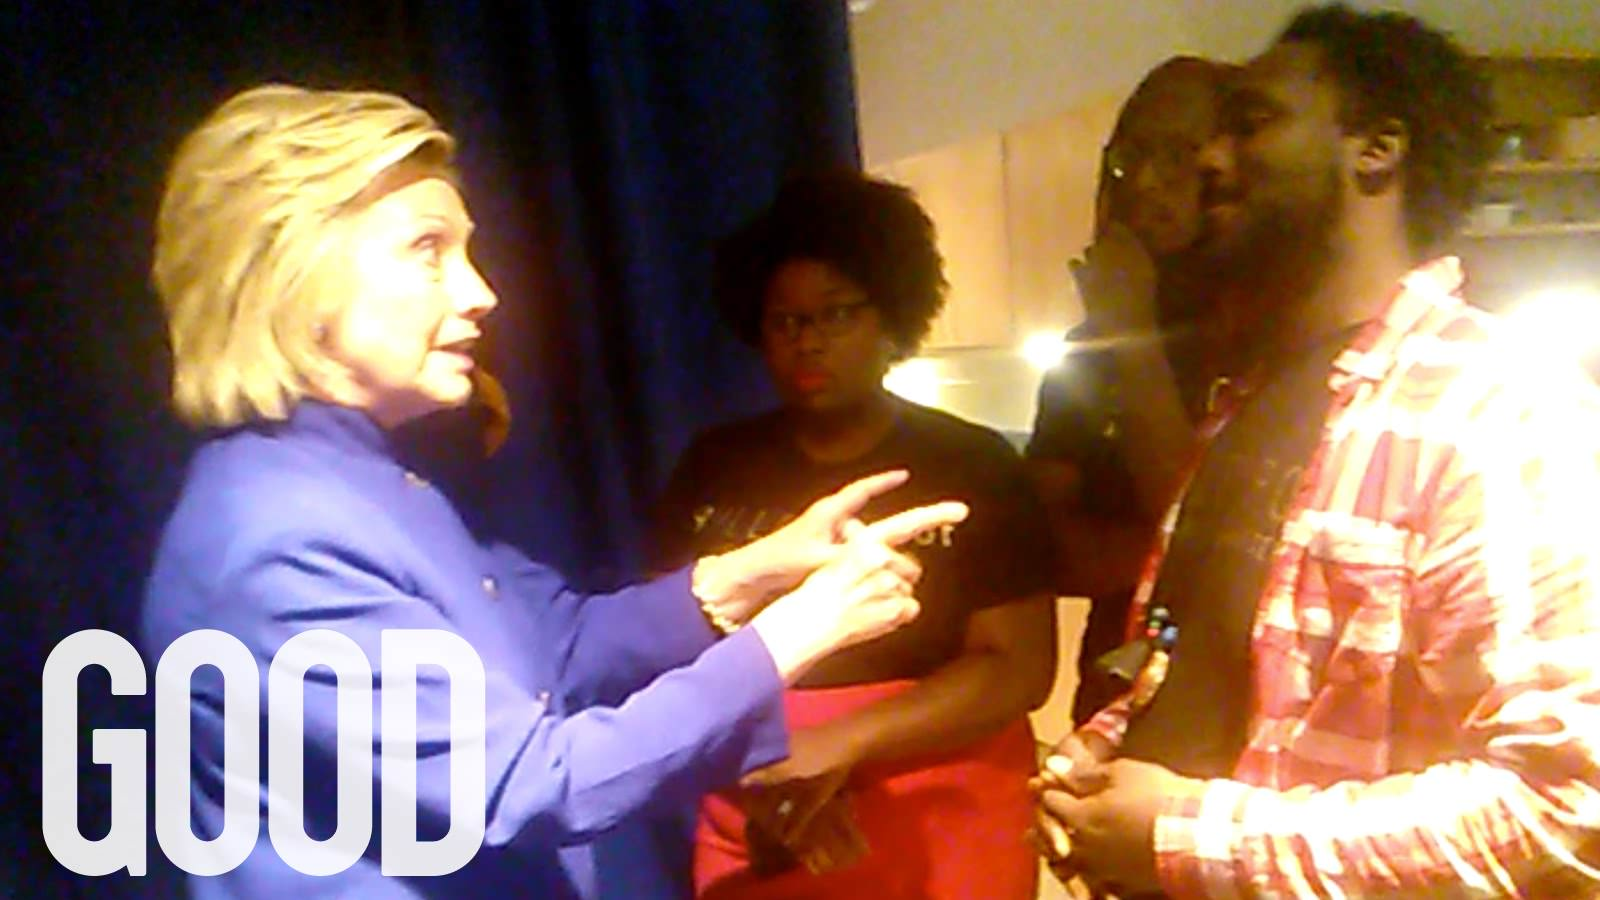 Black Lives Matter Accuse Hillary Of Victim Blaming In